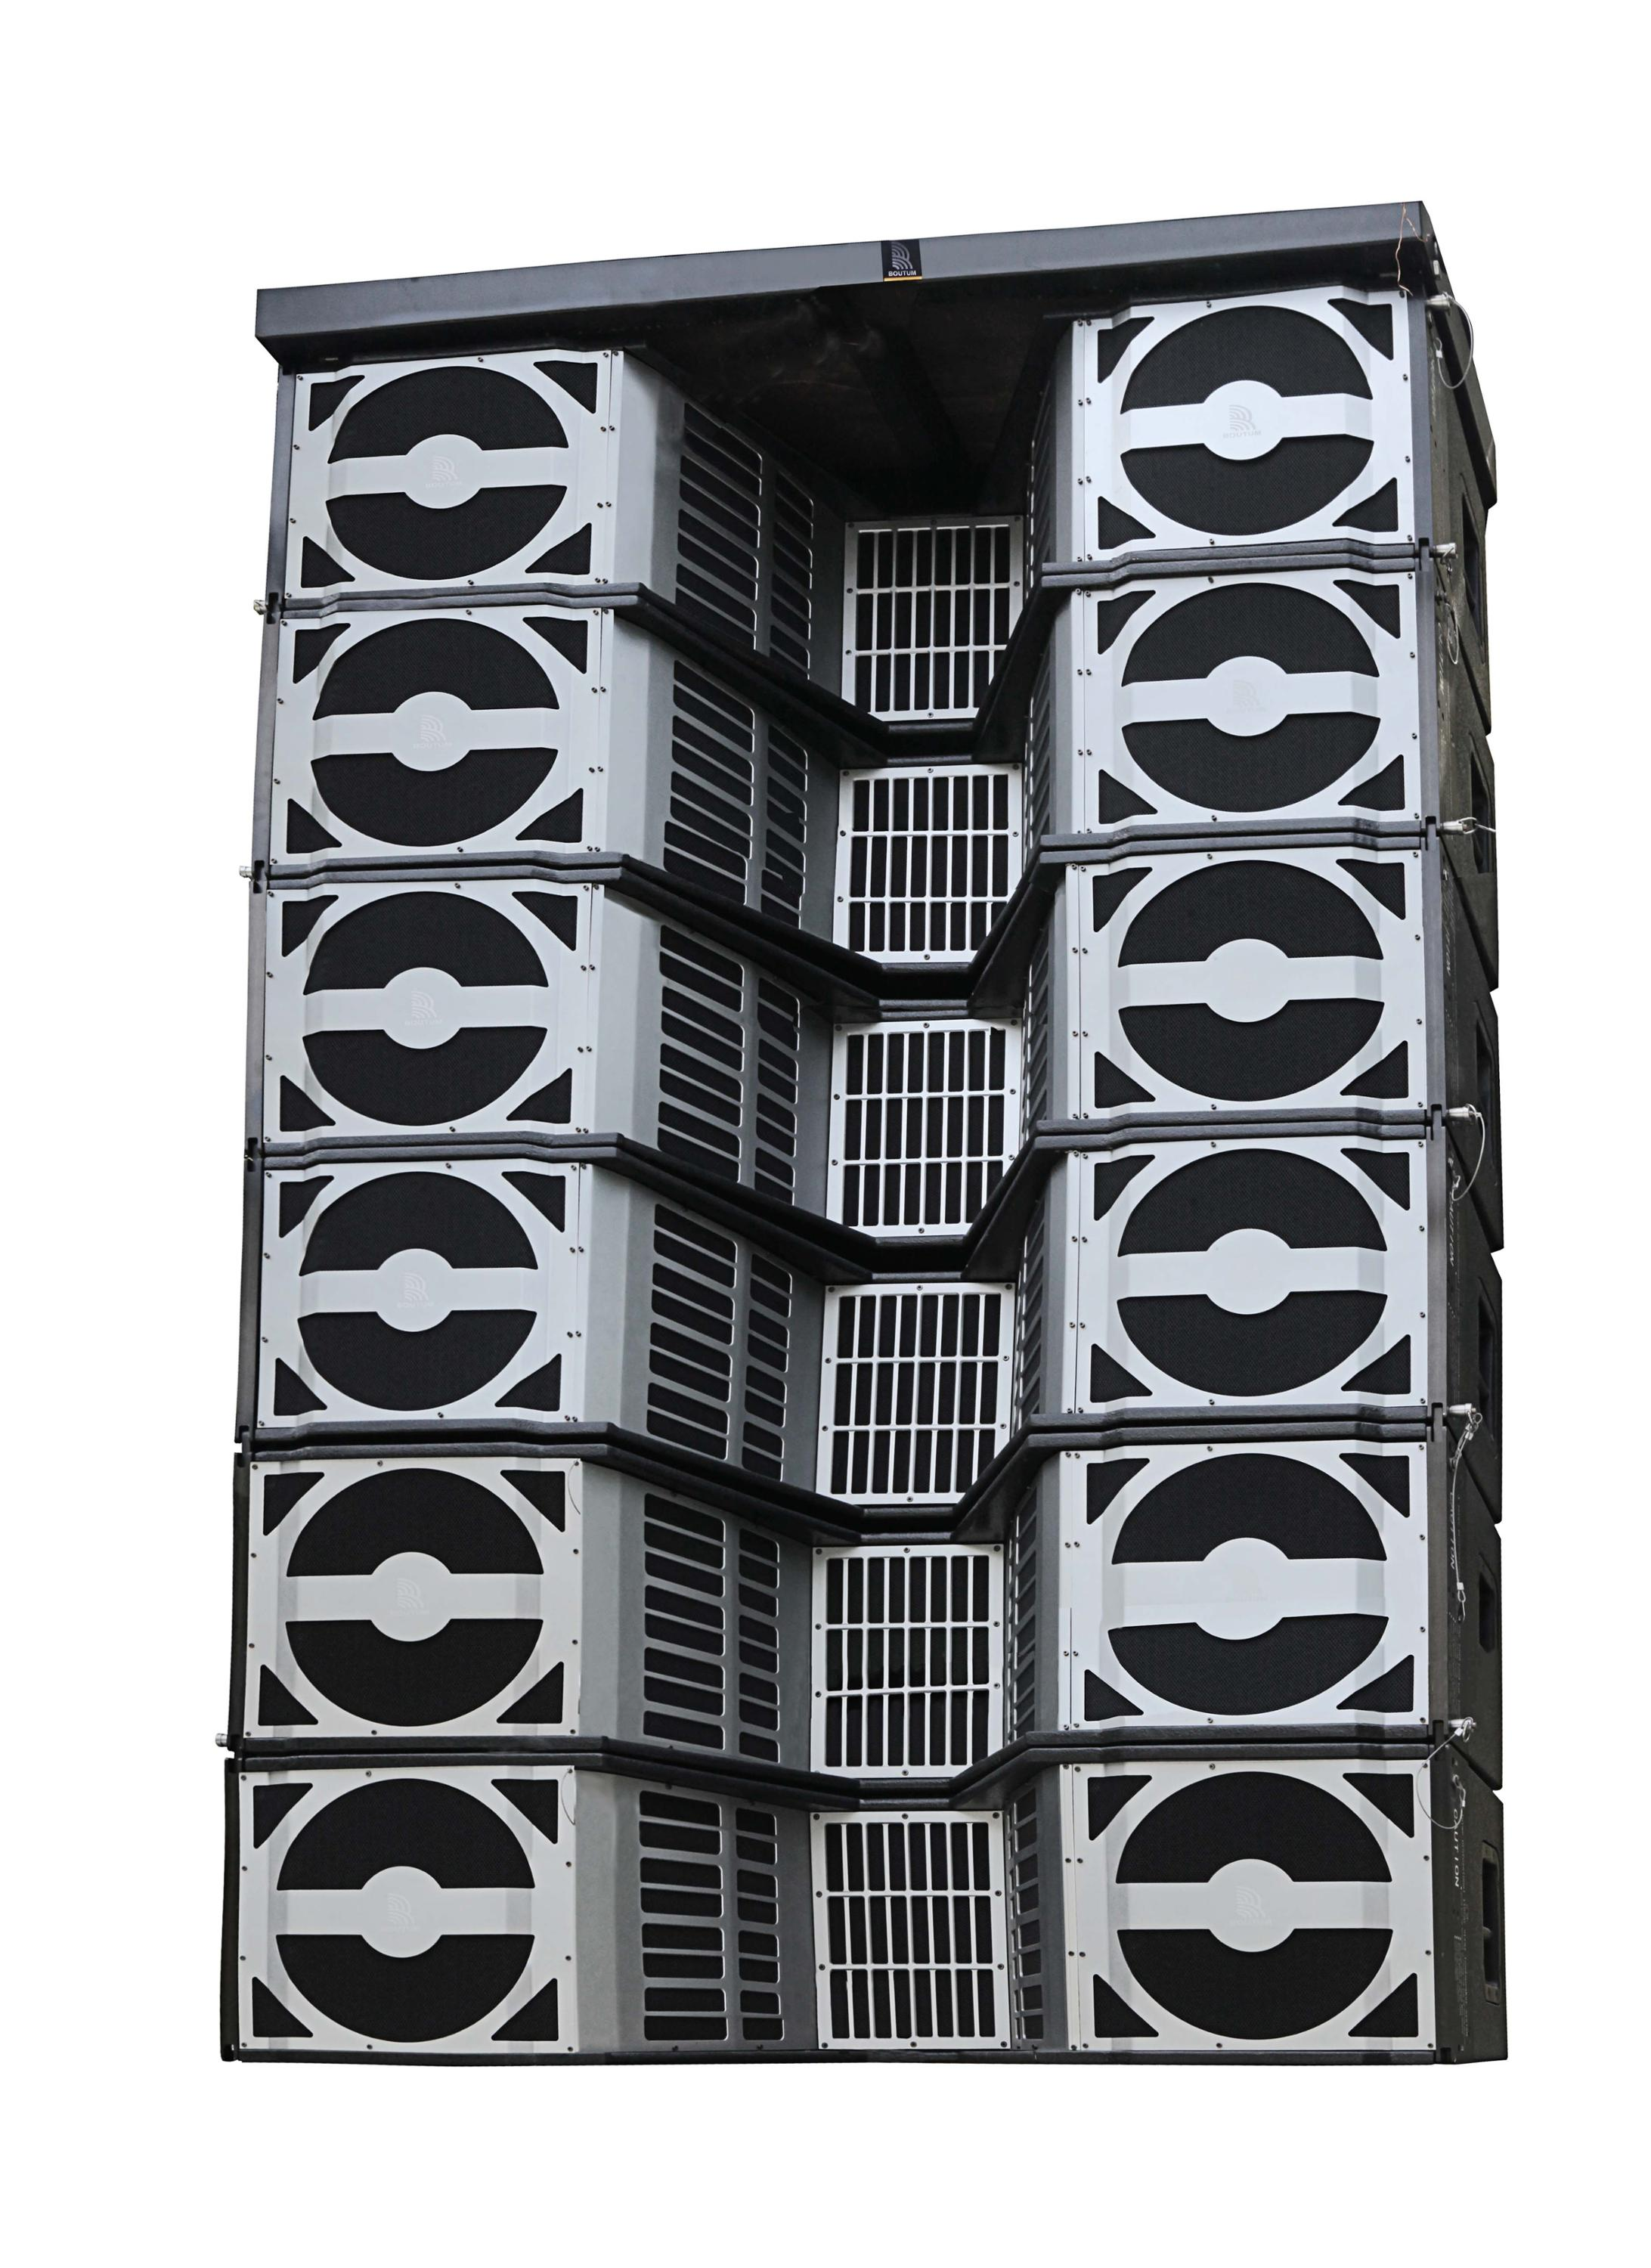 10000 W 4-Way Full-Range Pieno Neo DJ Sound Box Sistema di Altoparlanti Line Array Professionale Stadio PA System